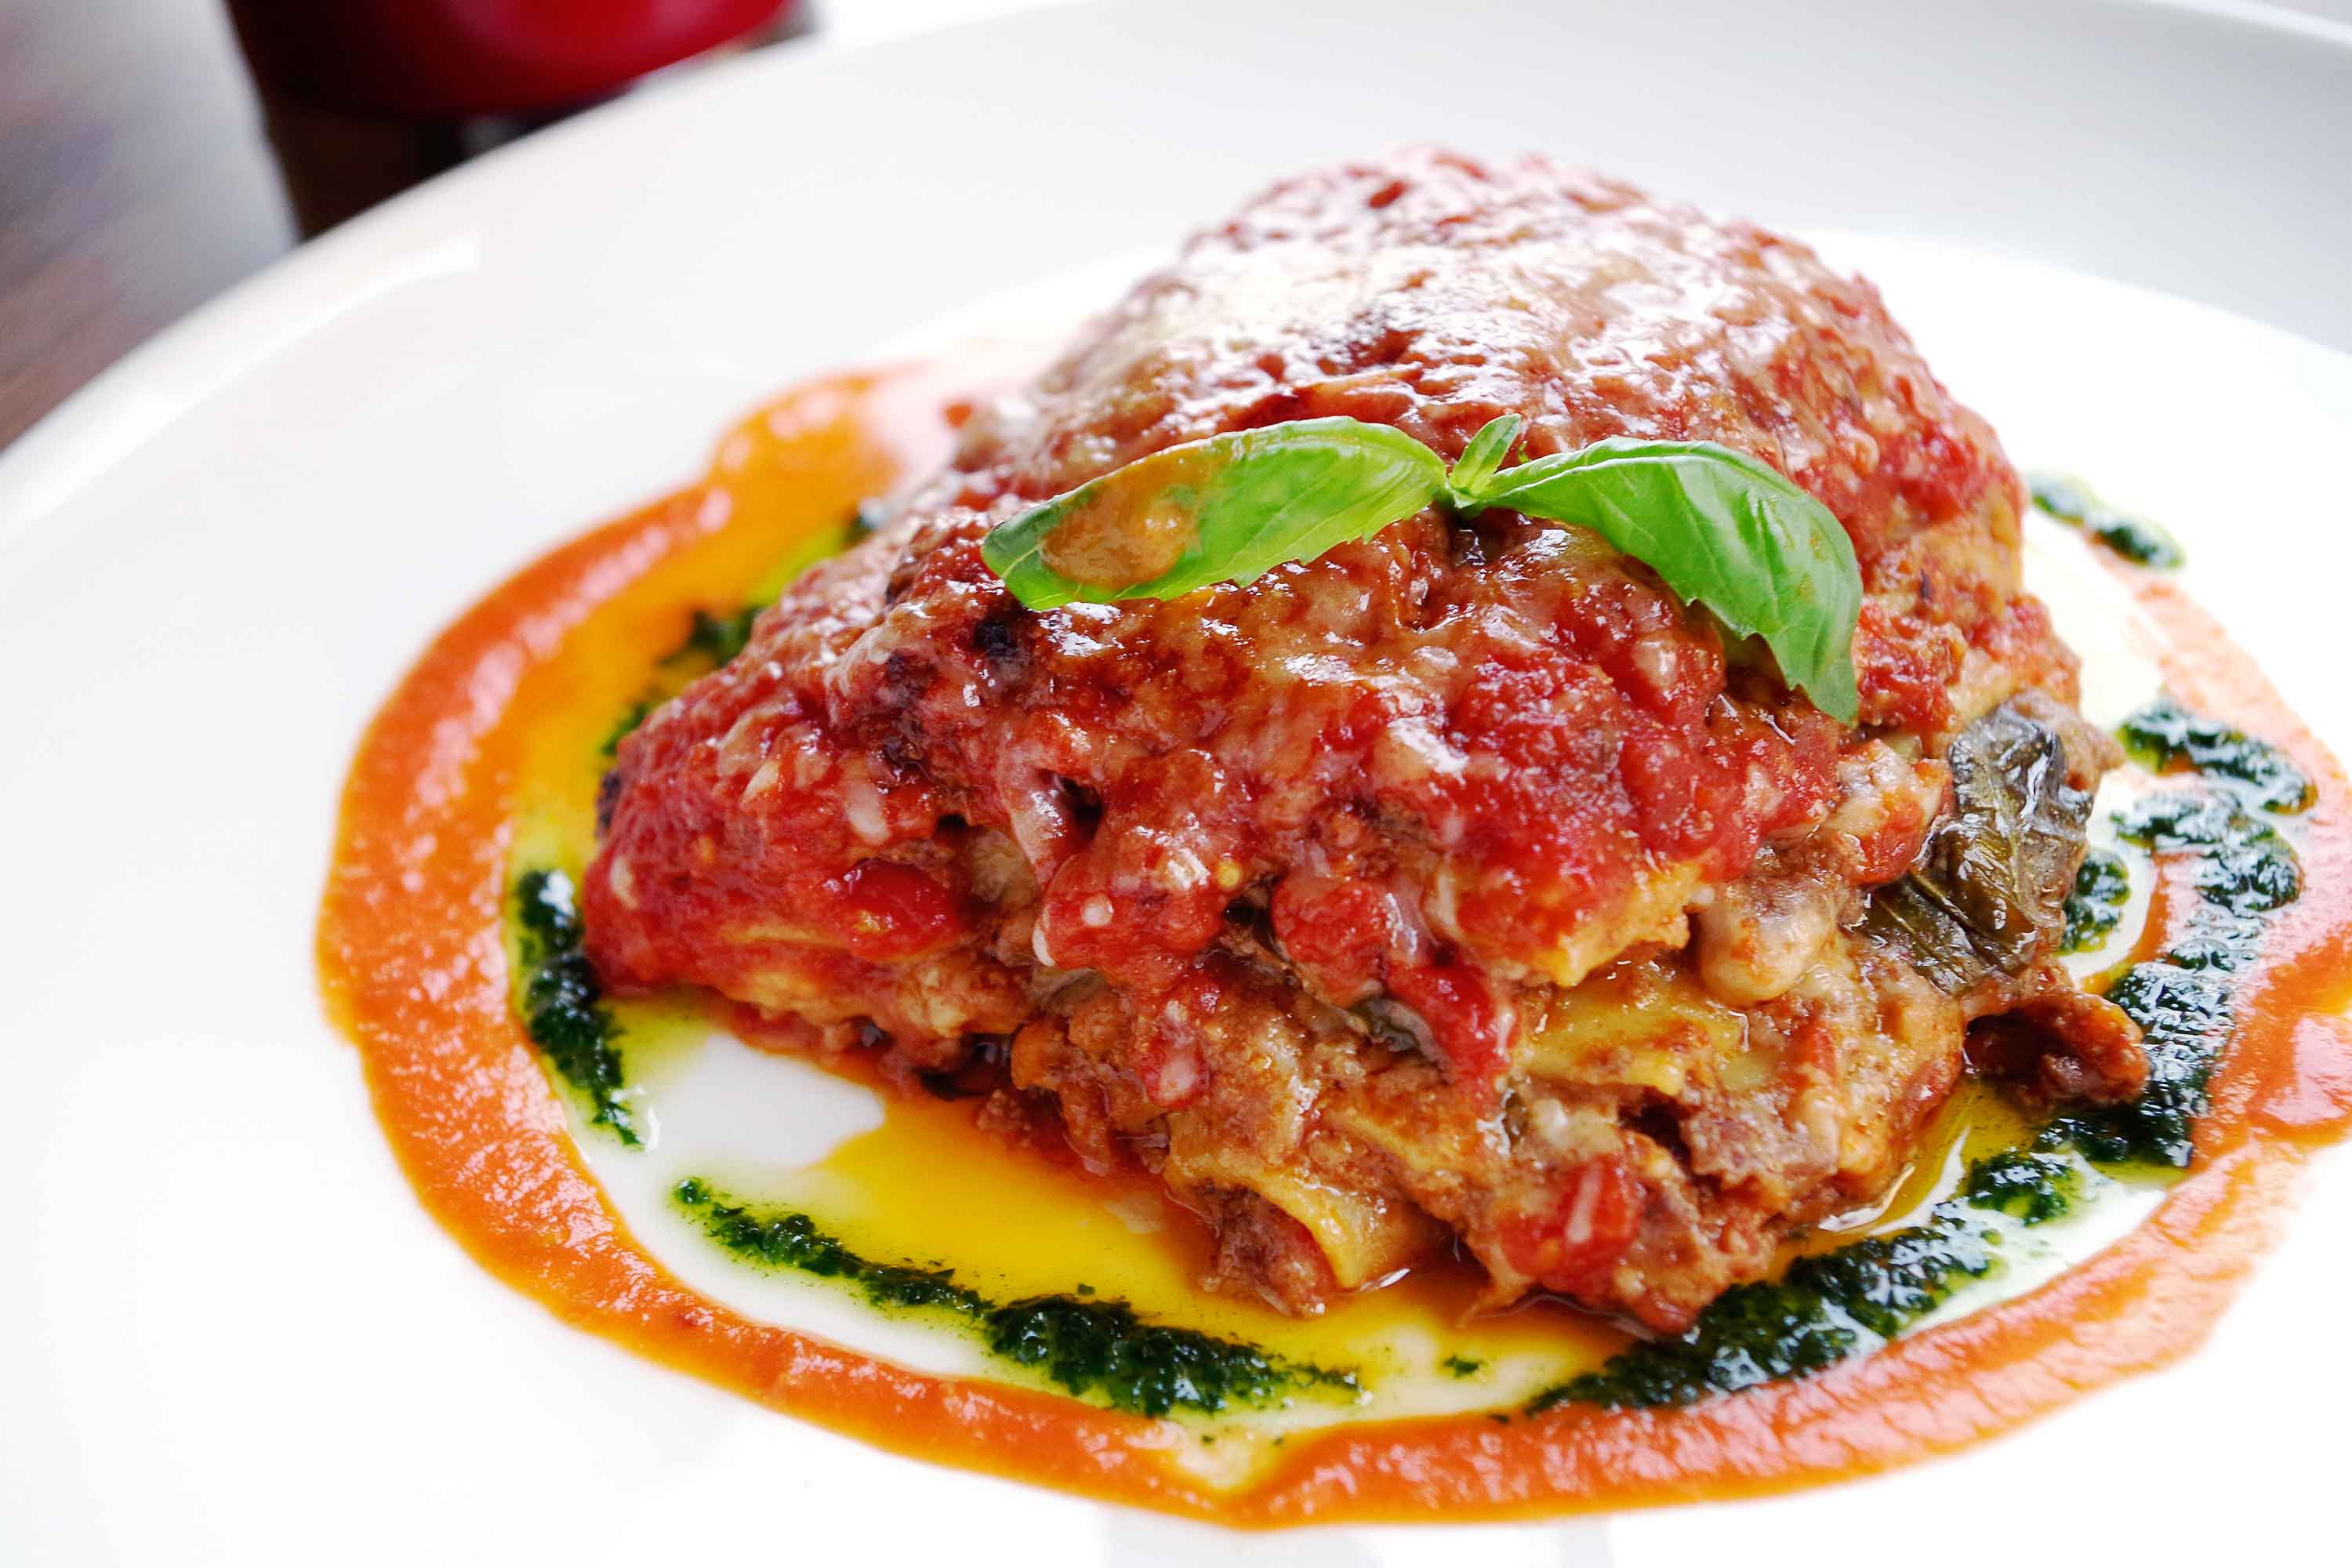 DiVino Patio - Lasagna